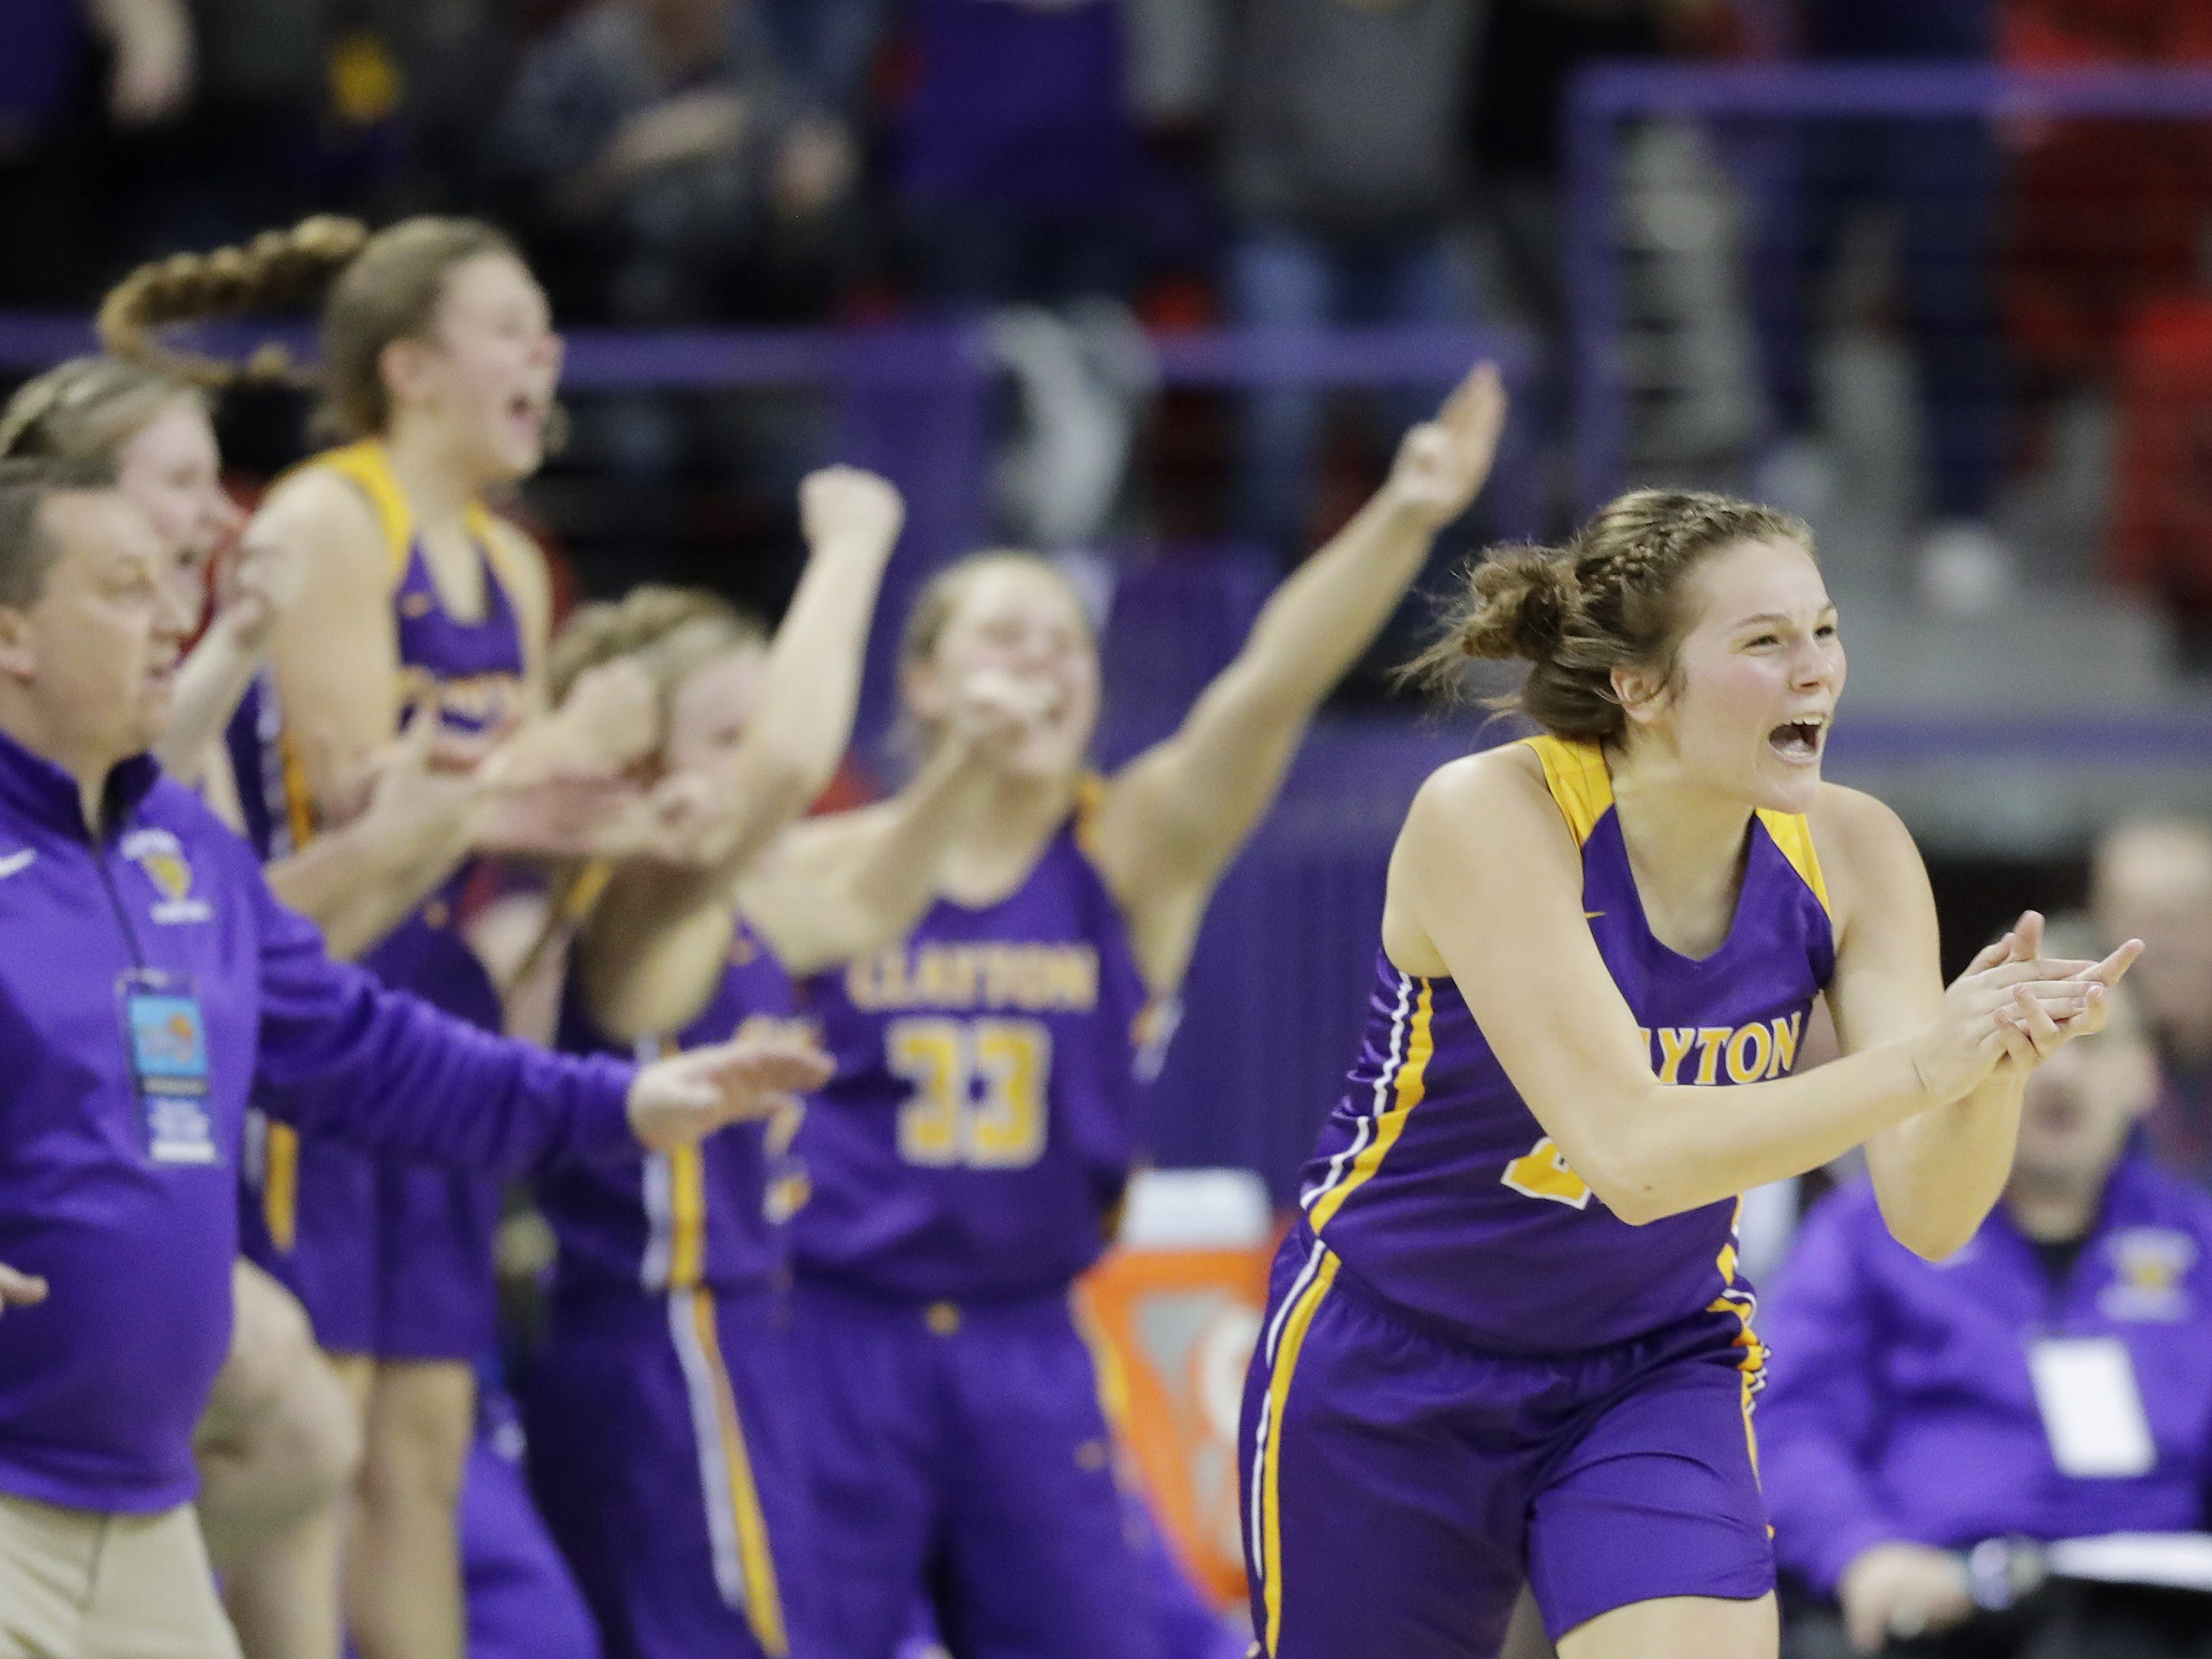 Clayton's Alison Leslie (23) celebrates after hitting a three-pointer against Wausau Newman in a Division 5 semifinal at the WIAA state girls basketball tournament at the Resch Center on Friday, March 8, 2019 in Ashwaubenon, Wis. Adam Wesley/USA TODAY NETWORK-Wisconsin